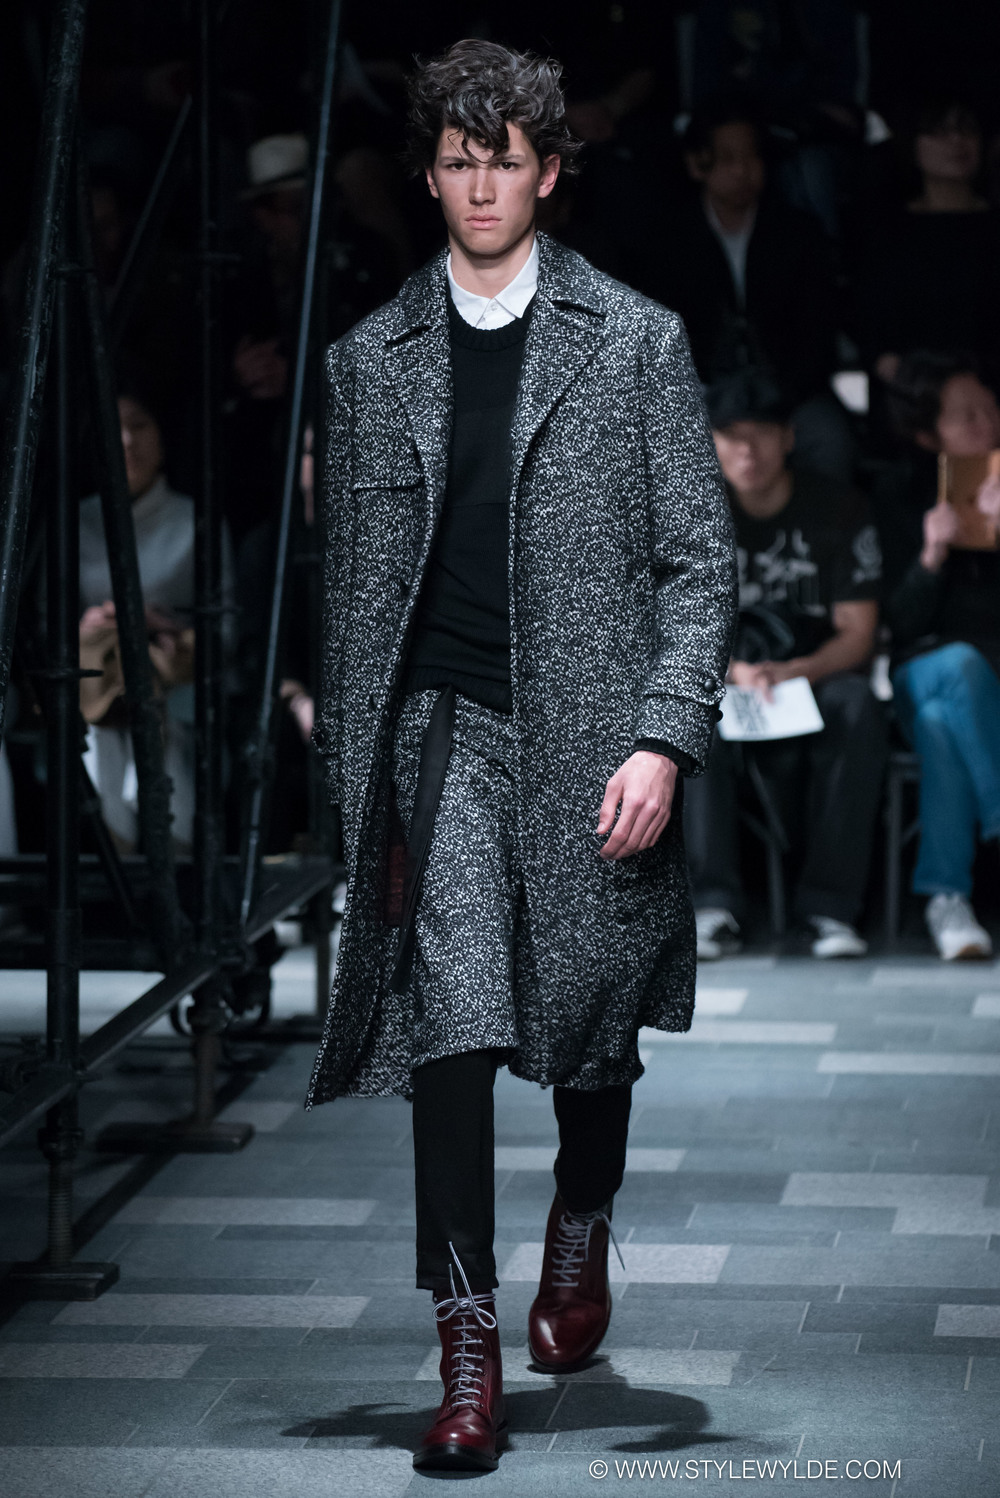 stylewylde_5351_pour_les_hommes_fw_2016-31.jpg